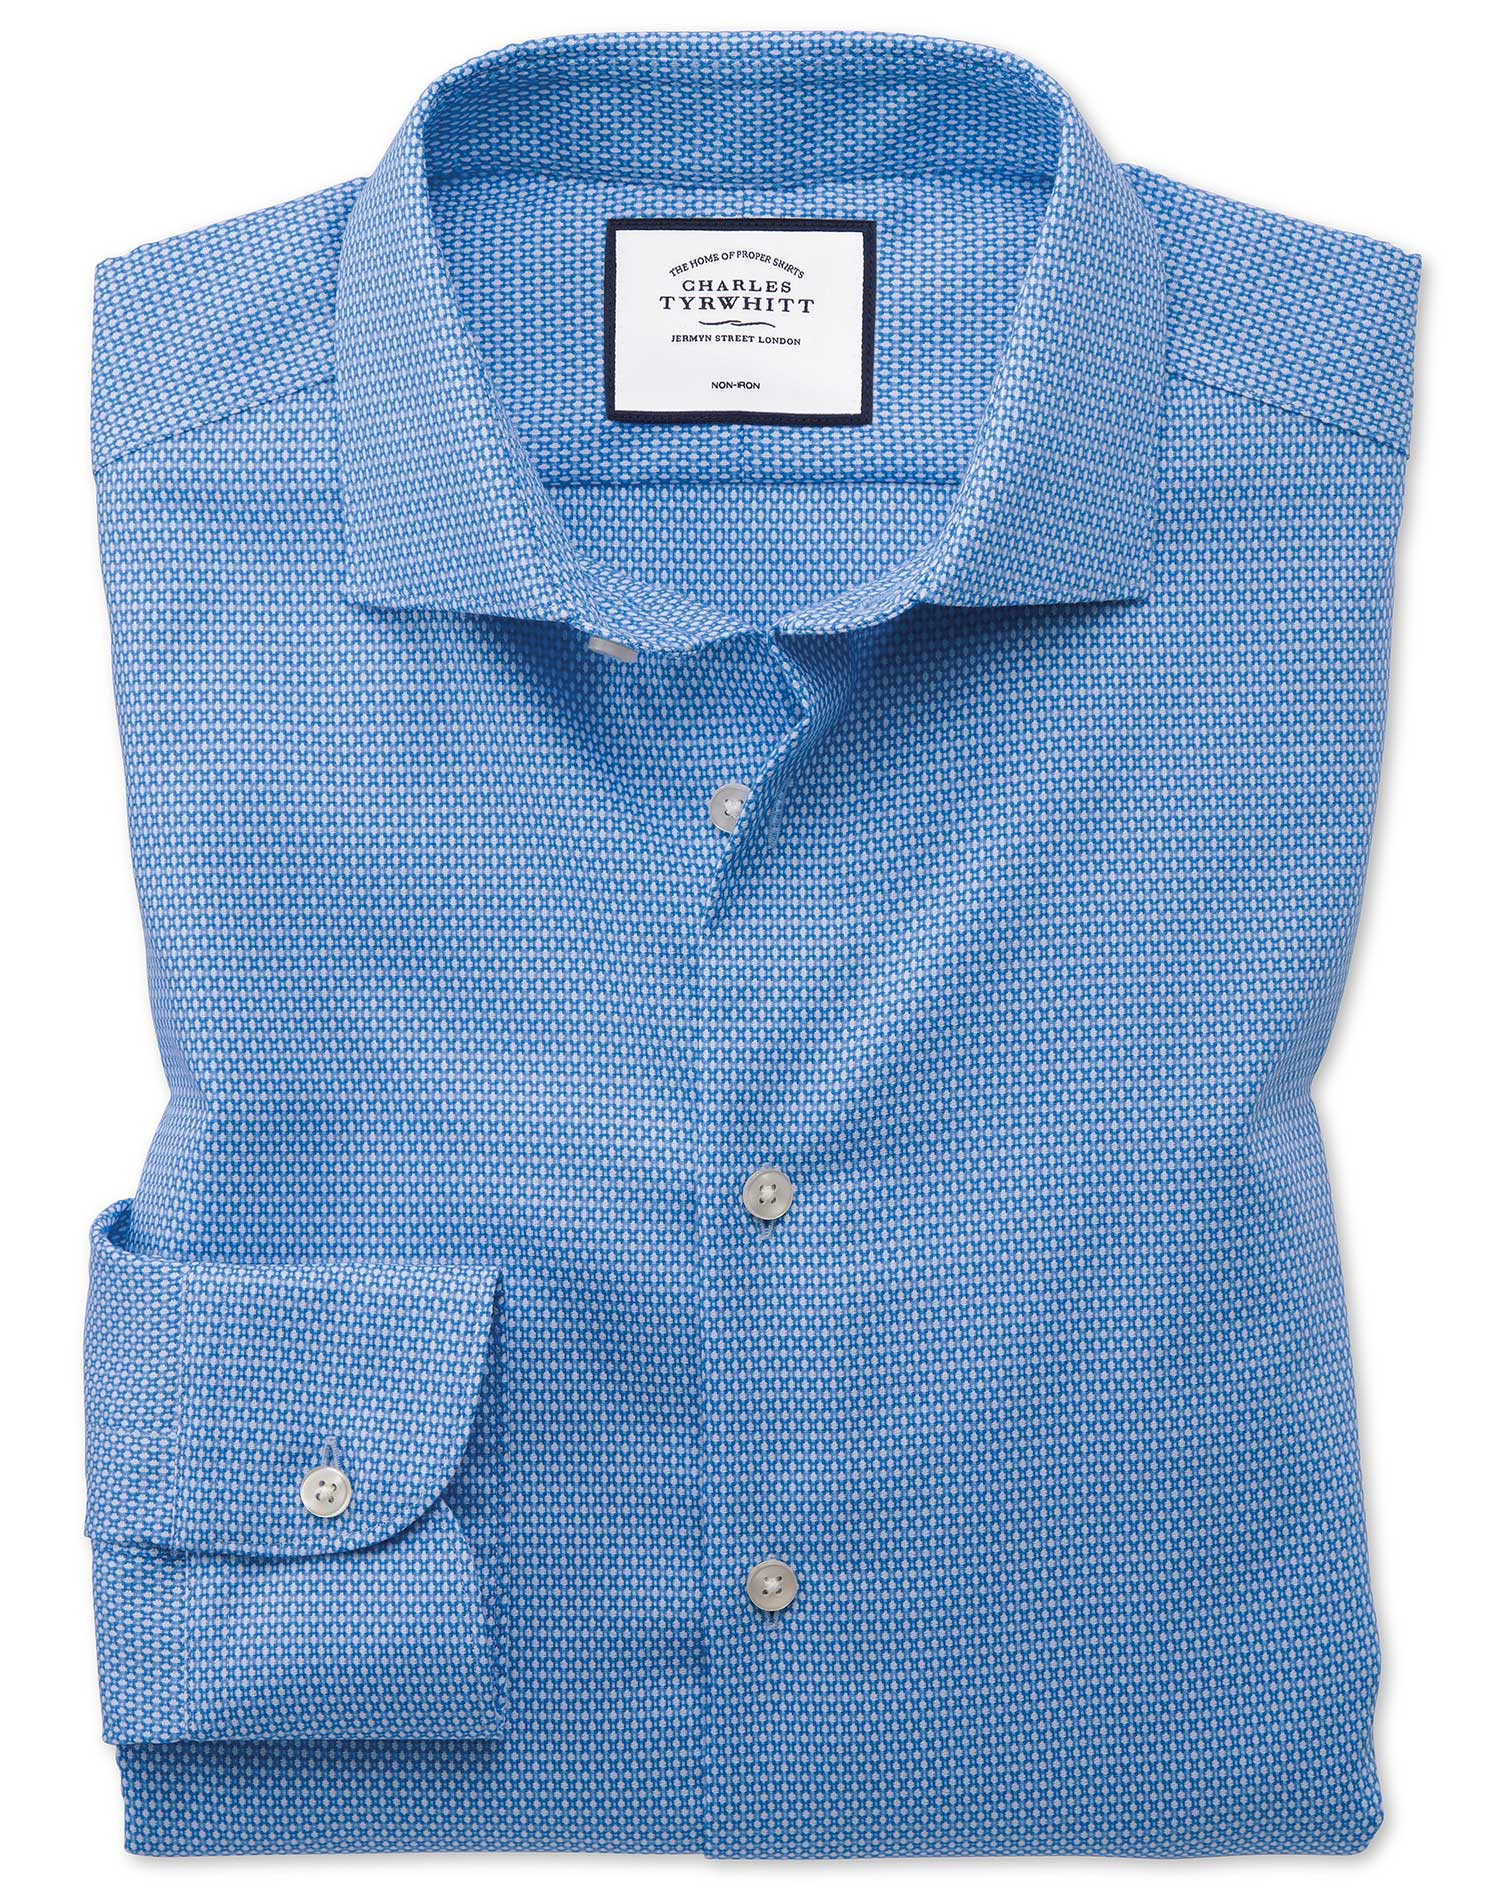 Classic Fit Business Casual Non-Iron Modern Textures Sky Blue Cotton Formal Shirt Single Cuff Size 1